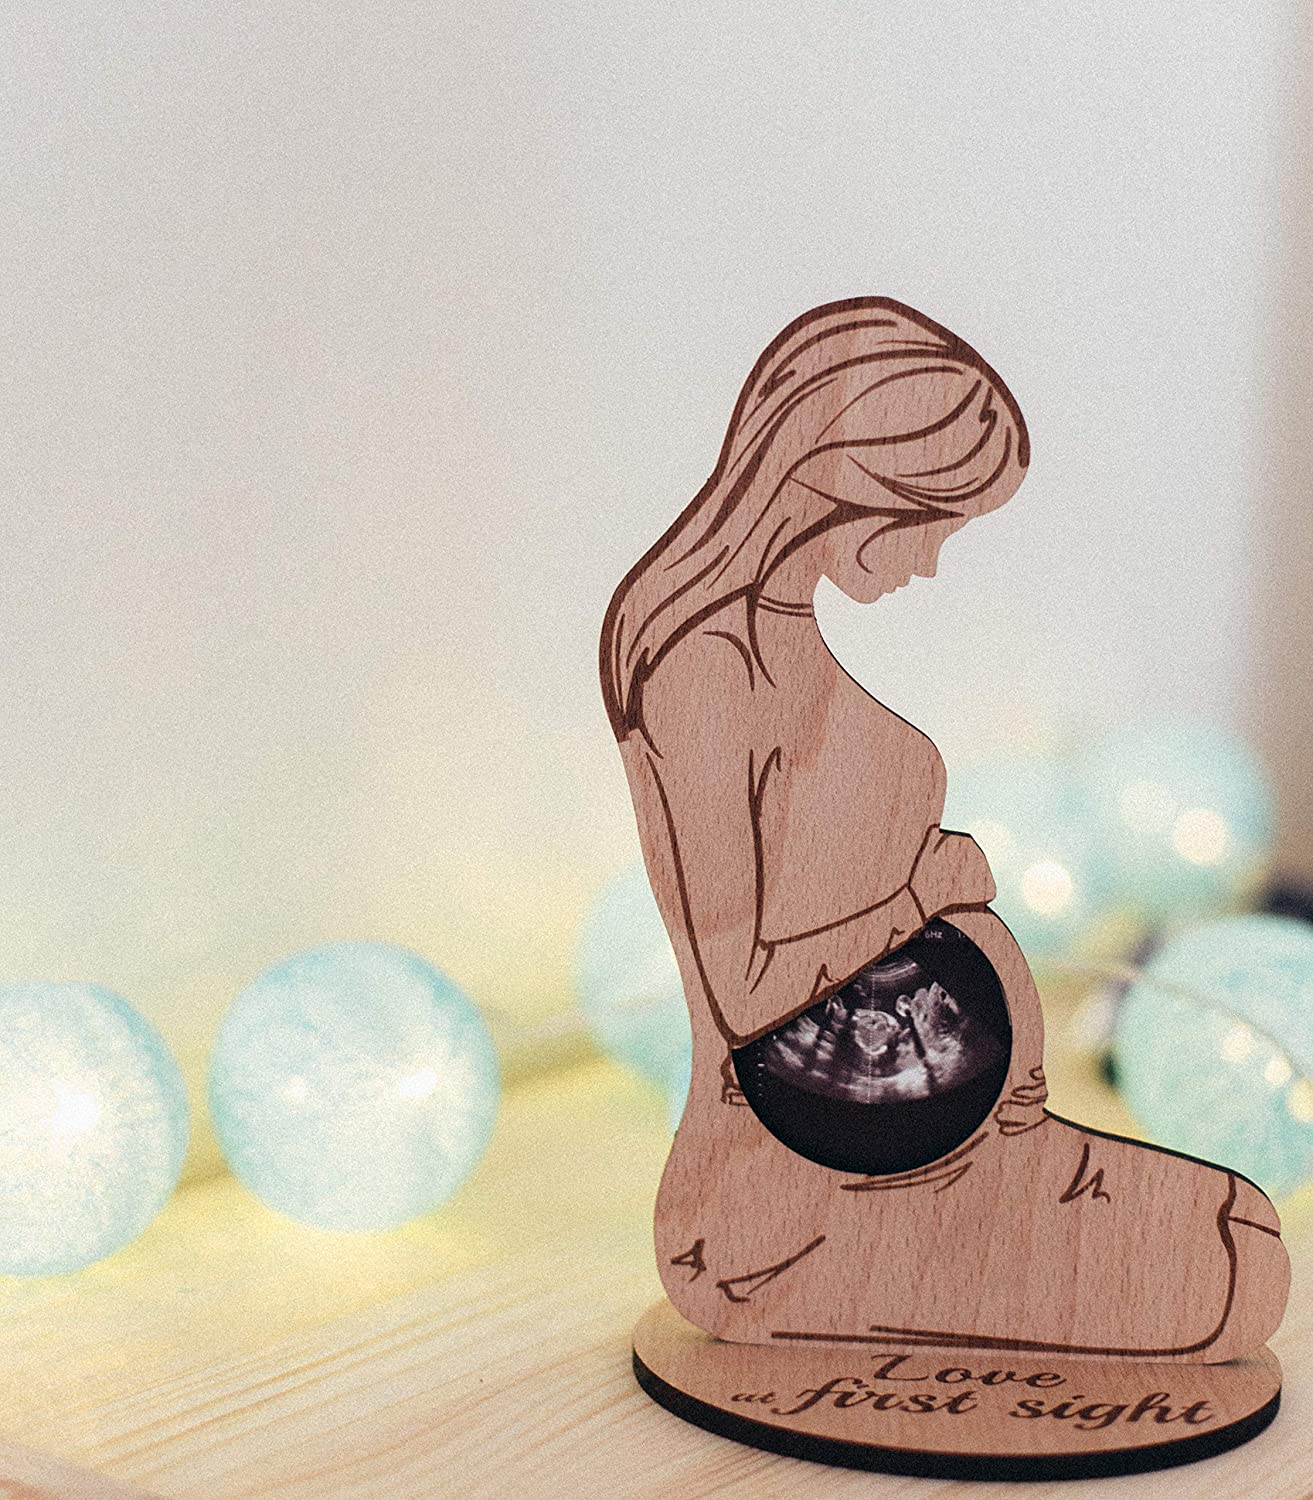 Mom to Be Sonogram Frame Pregnant Women Gifts Ideas Ultrasound Picture Frame